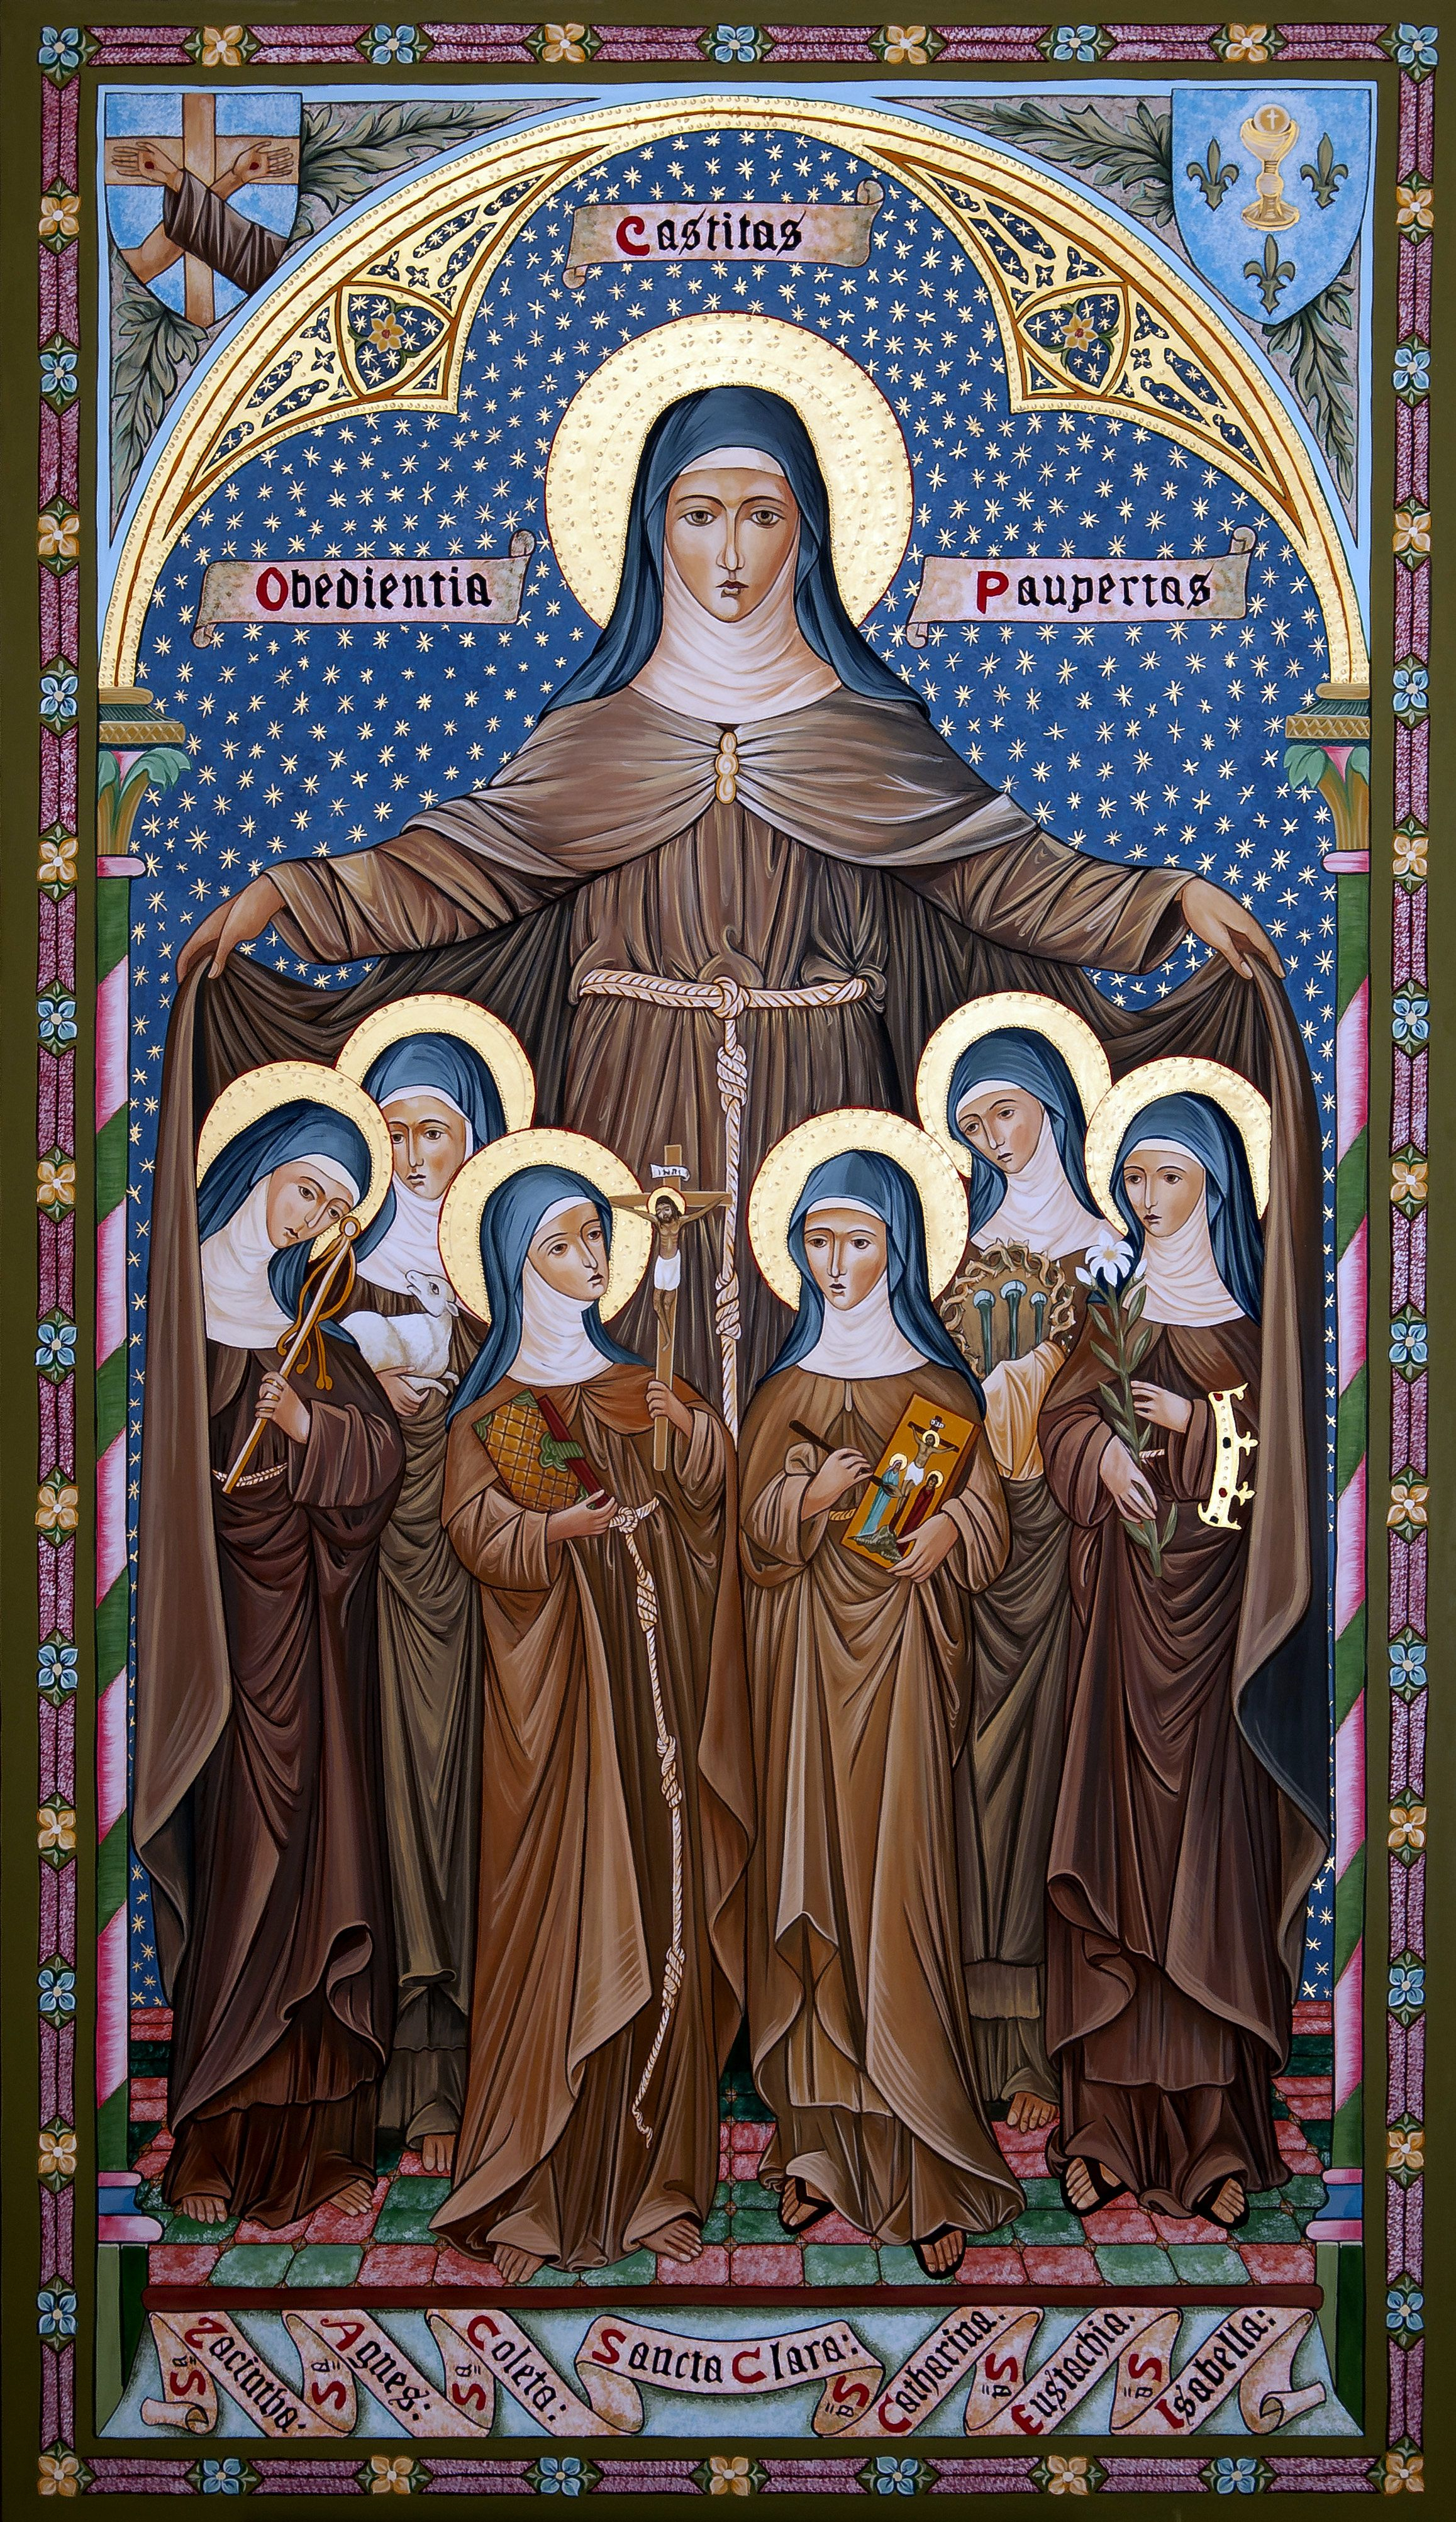 Saint Clare of Assisi, foundress of the Poor Clare nuns ...